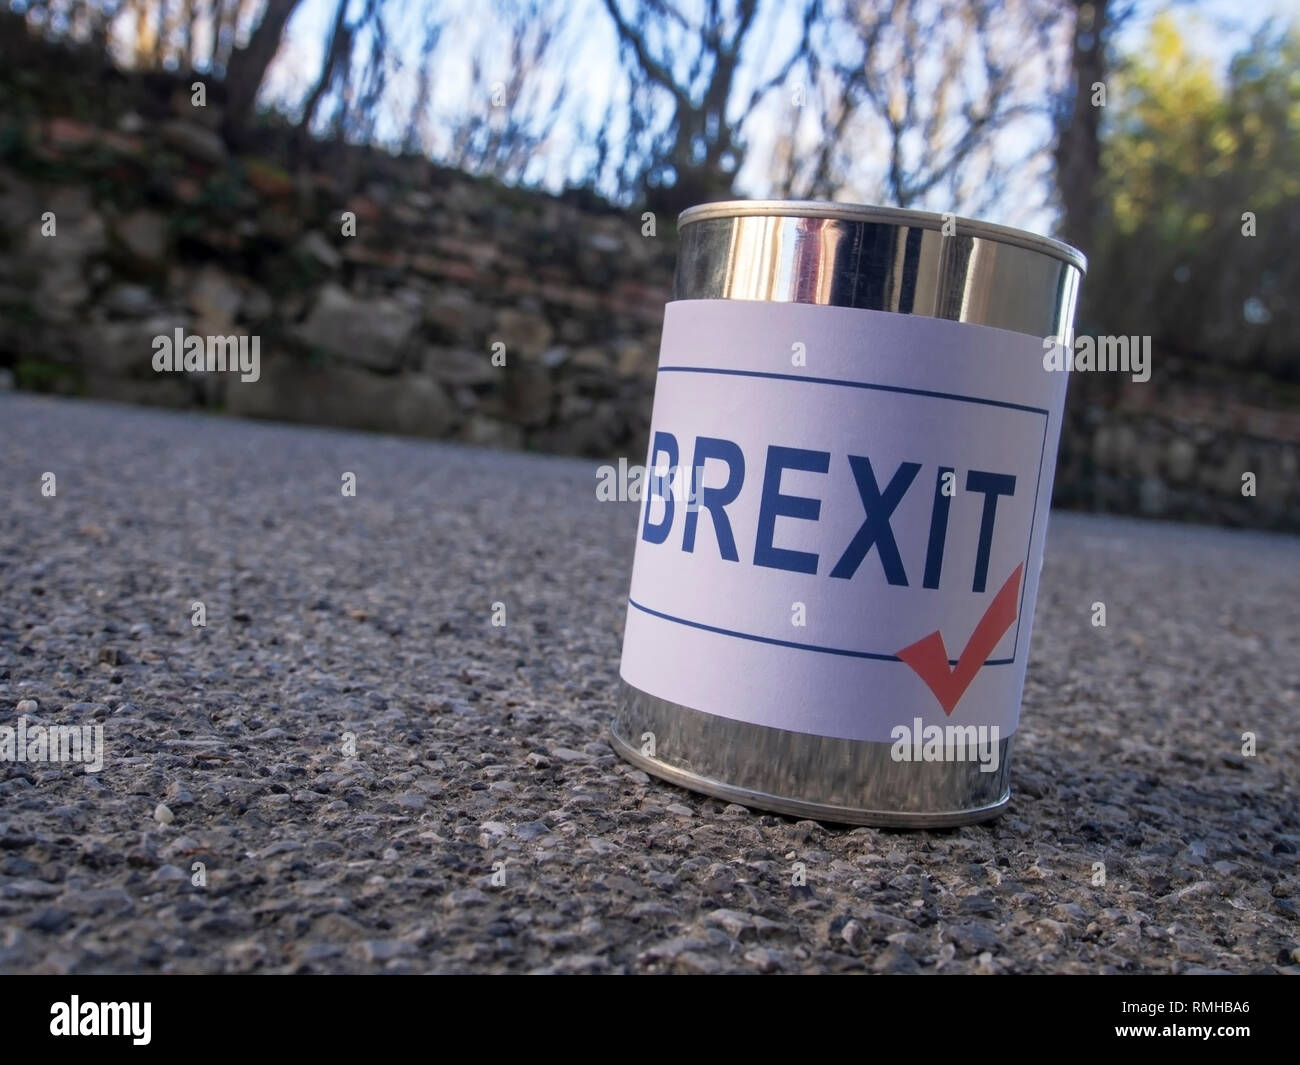 Brexit tin can in the road ready for a kick, UK EU politics metaphor or concept. - Stock Image